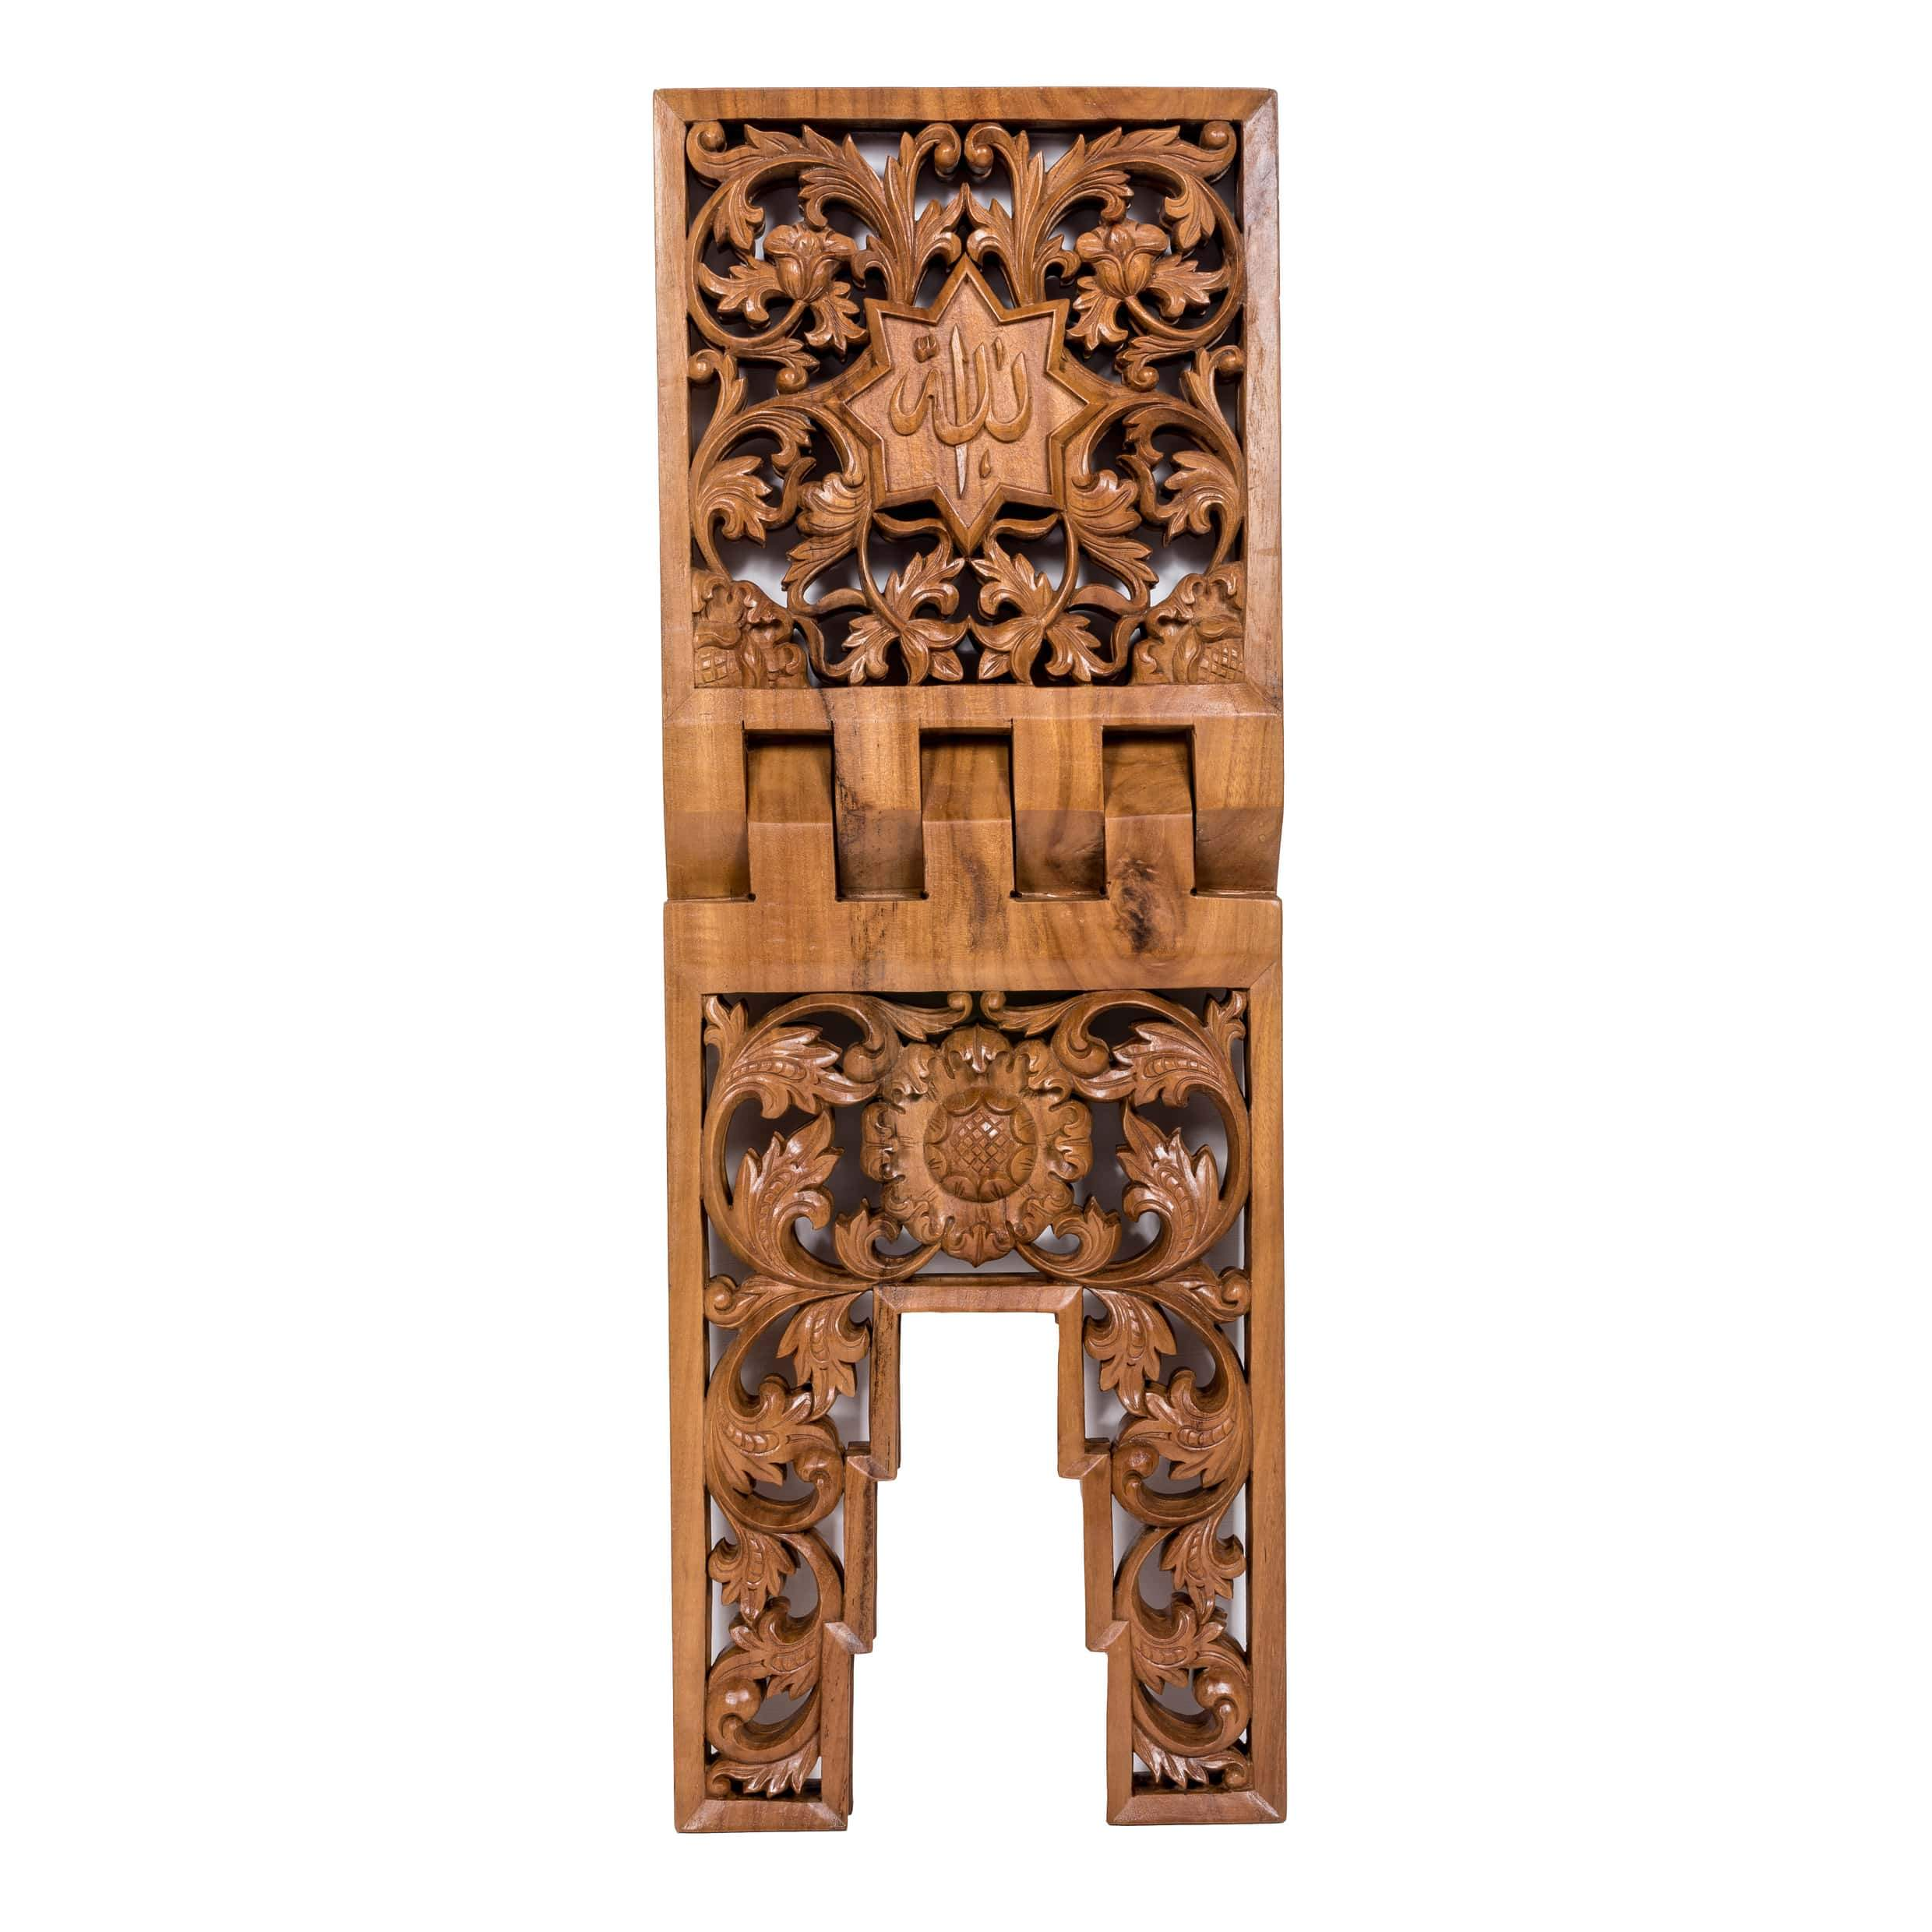 Rehal - Chip Carving - 25cm Length x 70cm Height - Design 2 - Mahajati